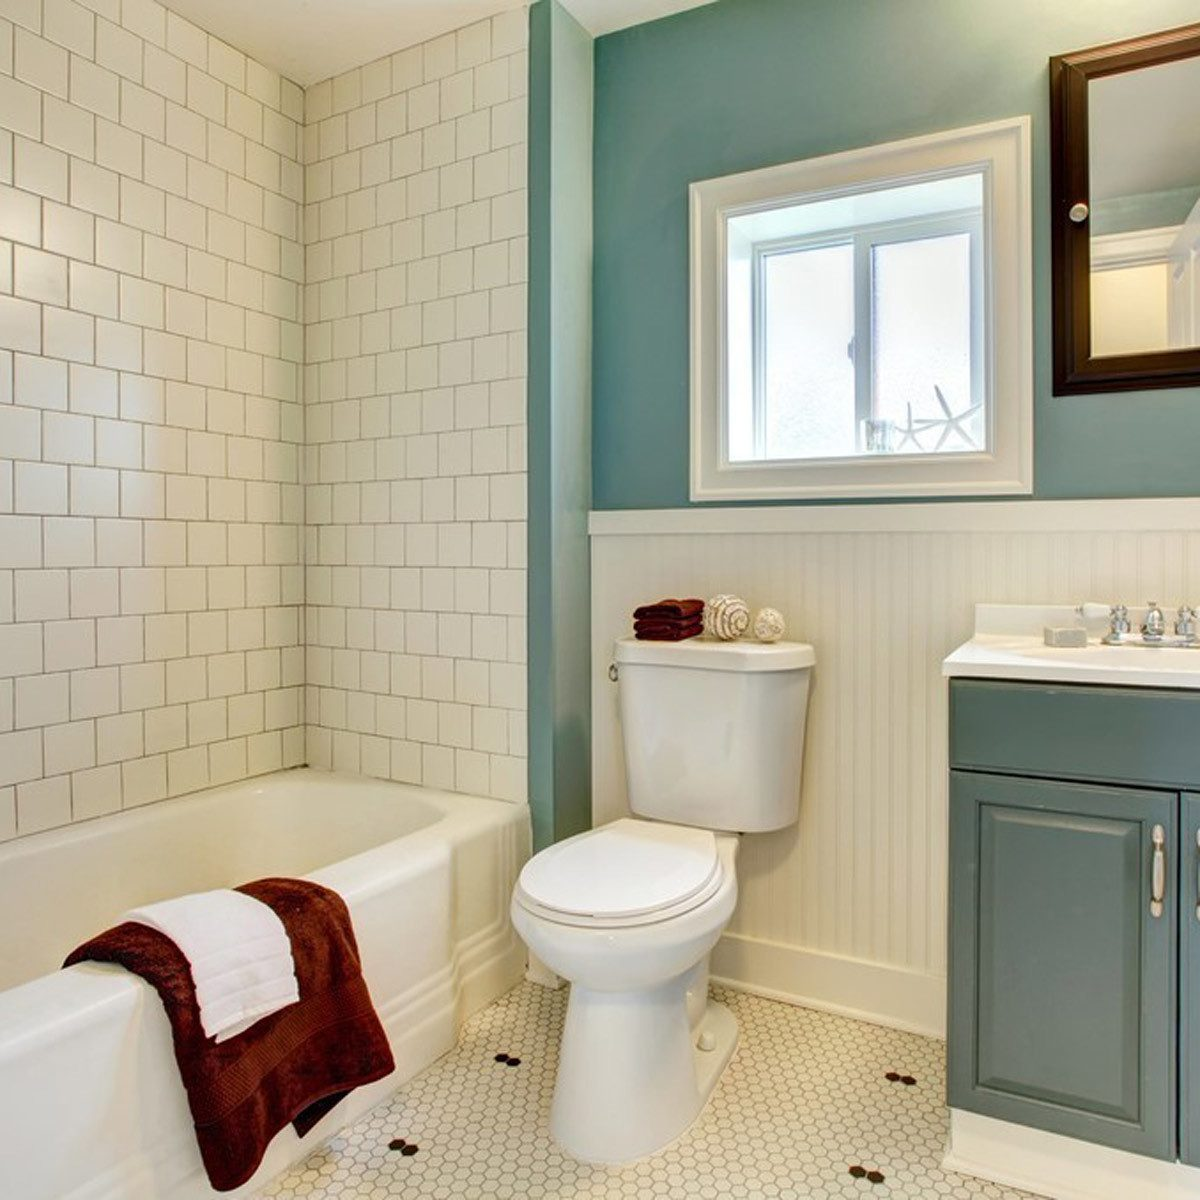 Washroom Tiles 13 Tile Tips For Better Bathroom Tile The Family Handyman